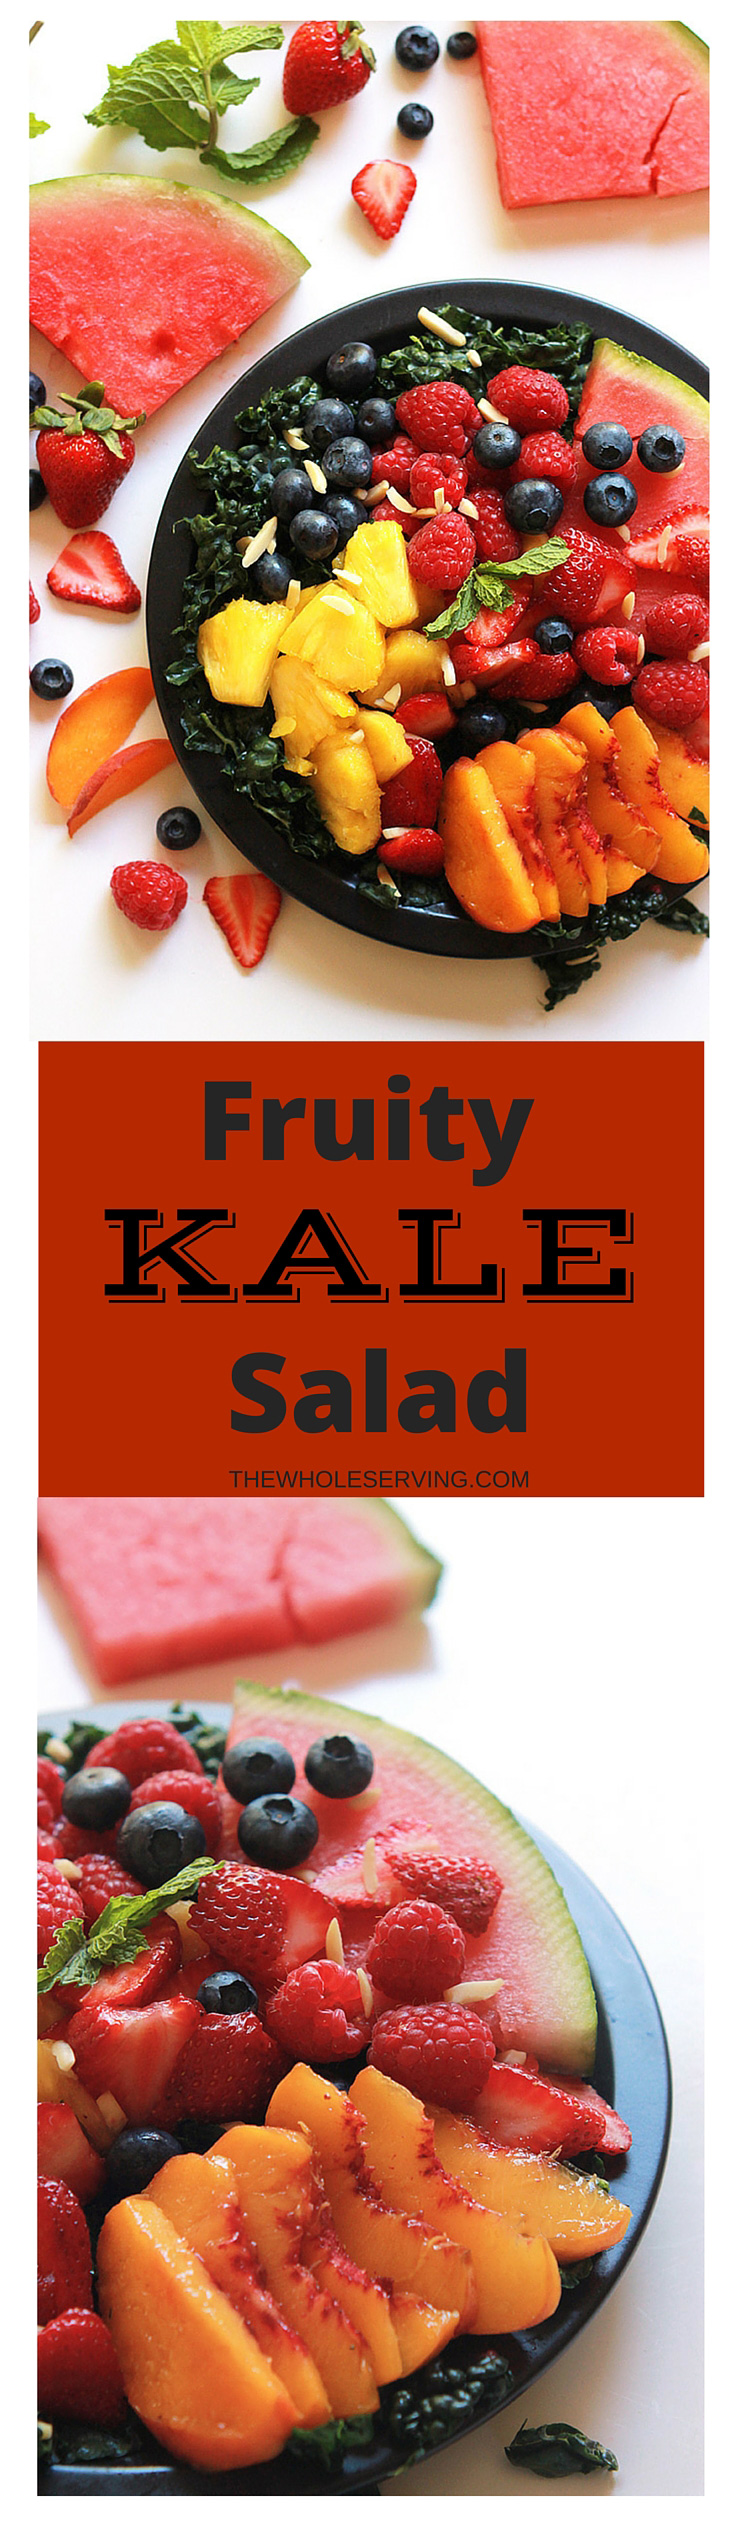 Sweet juicy fruit layered over gently massaged kale, dressed with poppy-seed dressing, this Fruity Kale Salad is loaded with flavor and nutritious goodness.